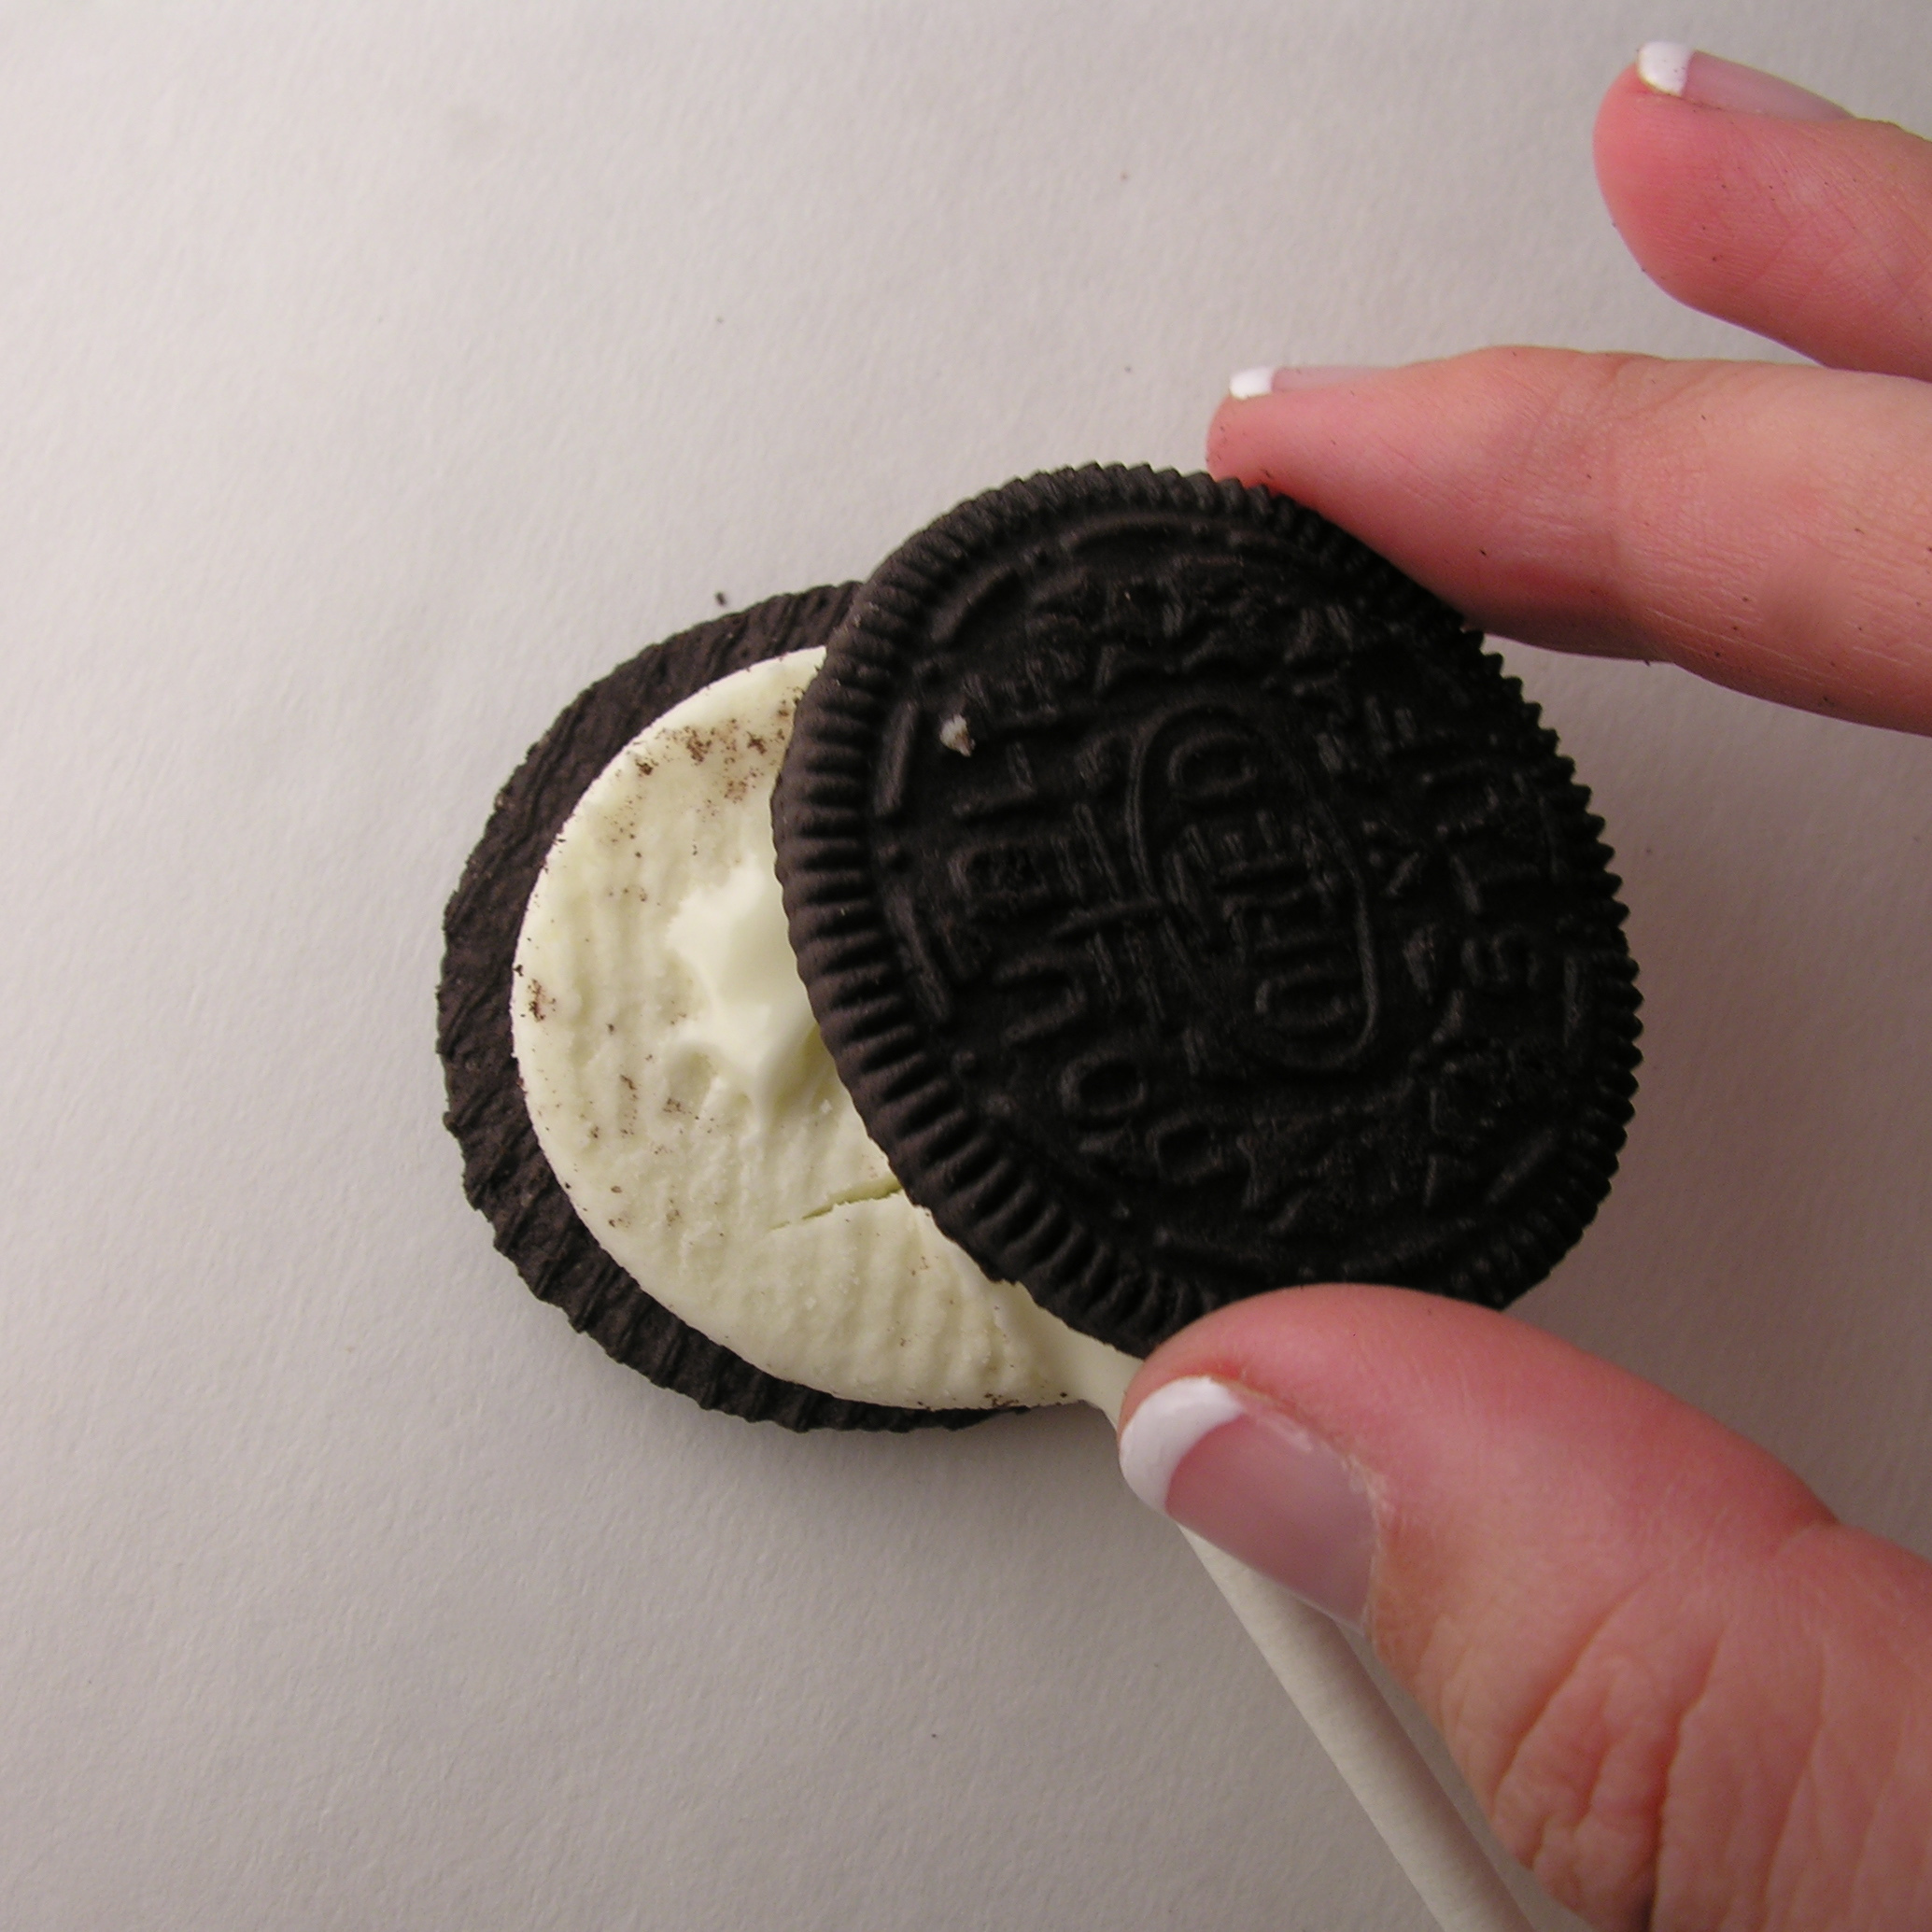 May 21, · Once you try this recipe for homemade Oreo cookies, you'll never want the packaged ones again! I have to admit that Oreo cookies are a guilty pleasure. When I first moved to the UK, they didn't sell them here and I used to stock up every time I went home. A /5(37).